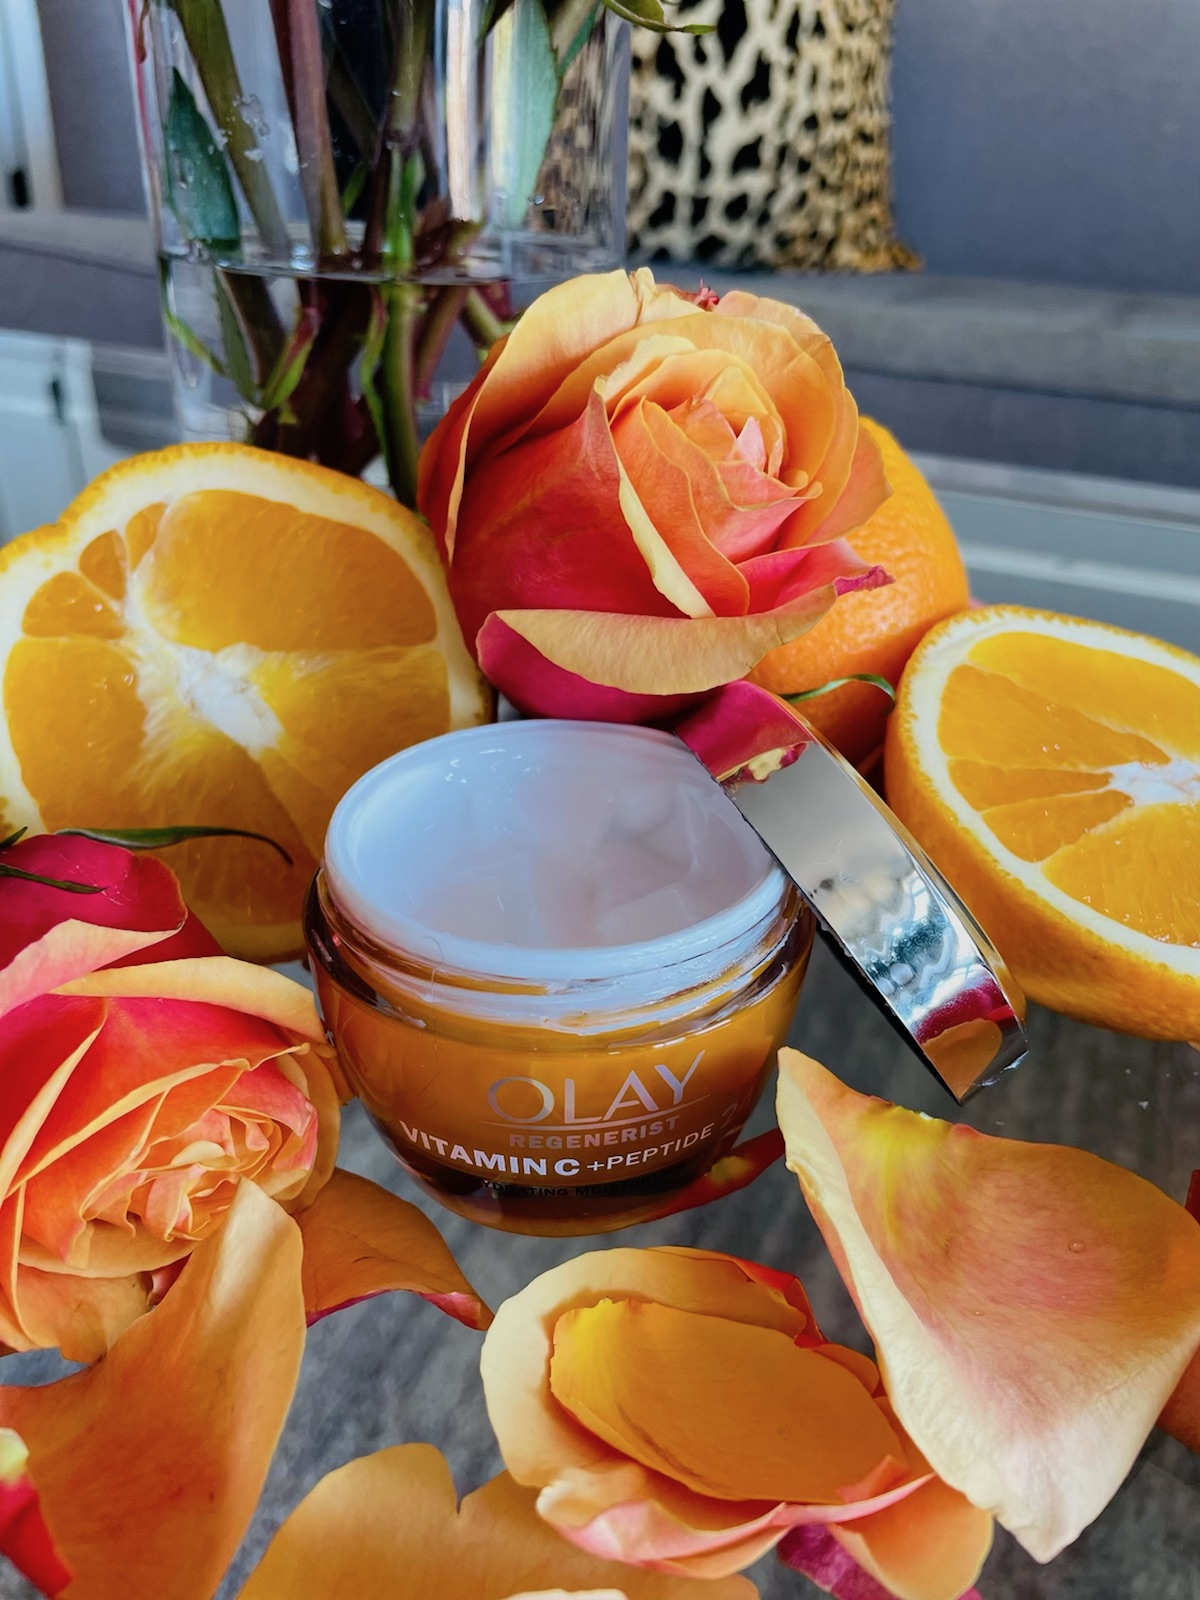 Olay vitamin C moisturizer, vitamin c moisturizer, skincare routine, beauty routine, beauty photography, skincare photography, skincare aesthetic, serum photography ideas, Red Soles and Red Wine, Jennifer Worman